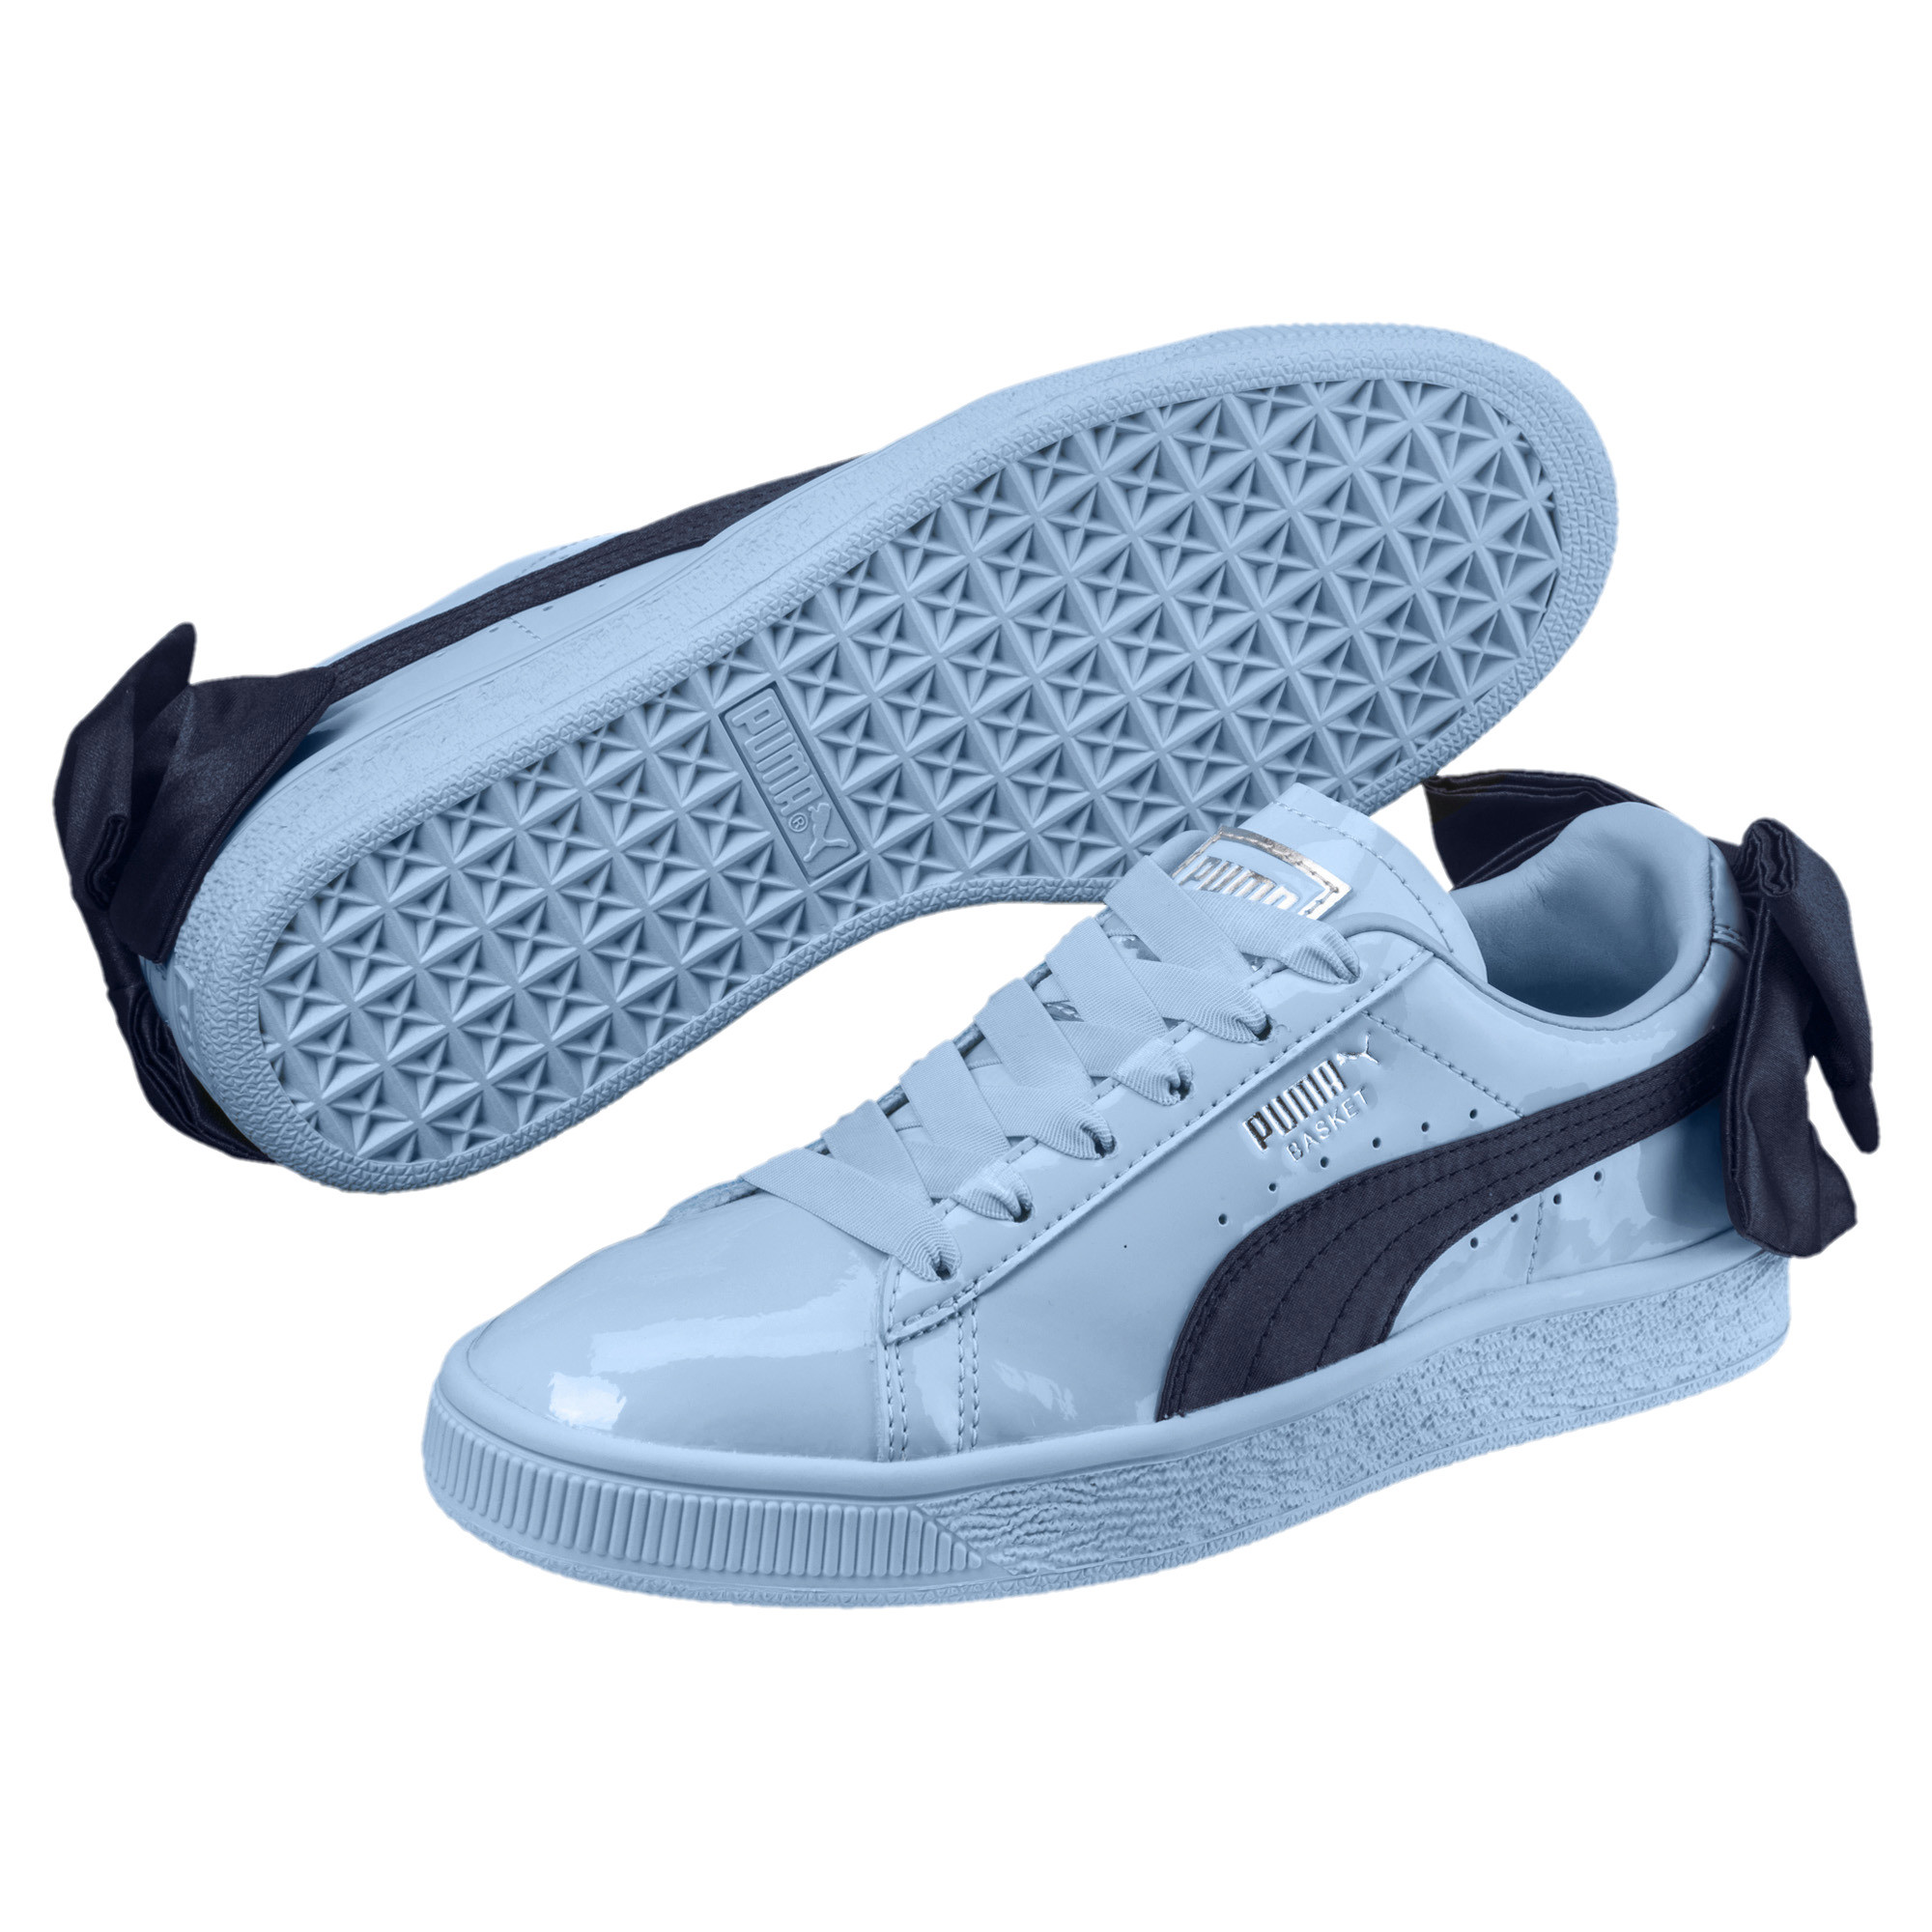 121ed04494 Details about PUMA Basket Bow Patent Sneakers JR Girls Shoe Kids